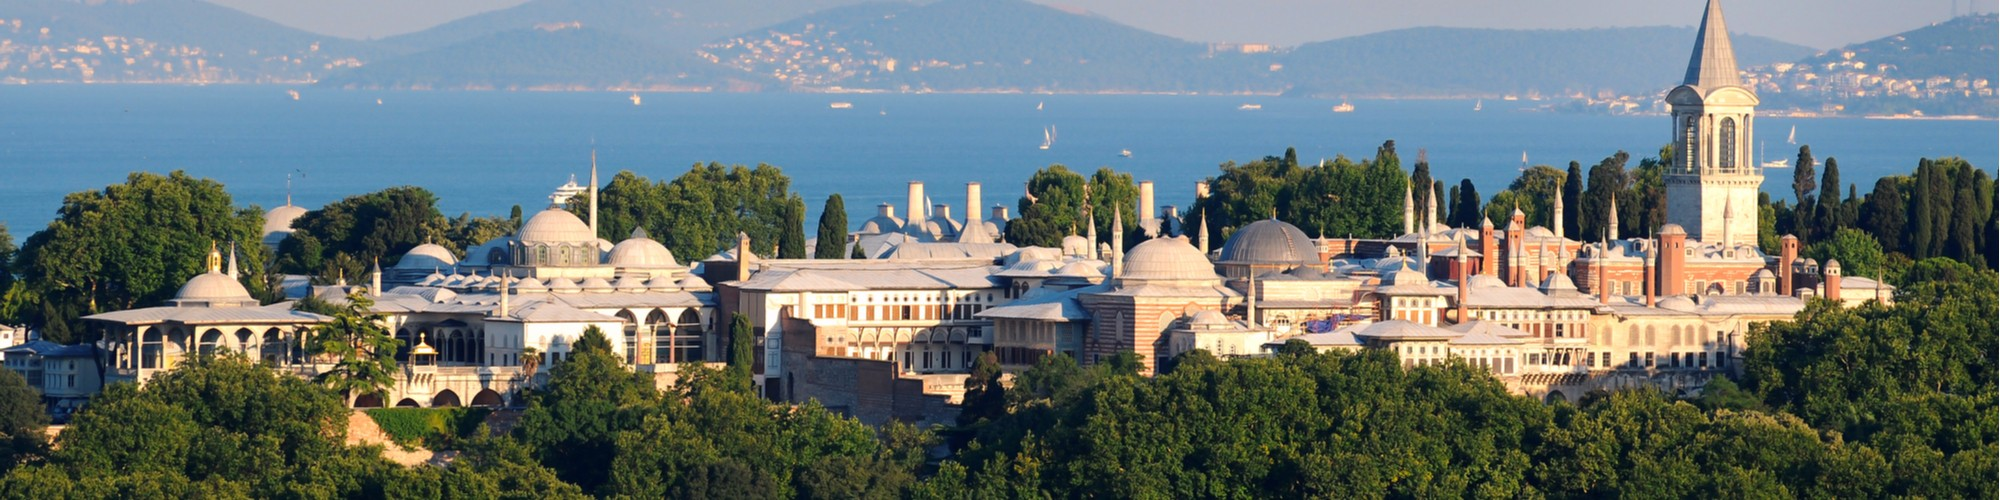 Topkapi Palace Overview, Istanbul